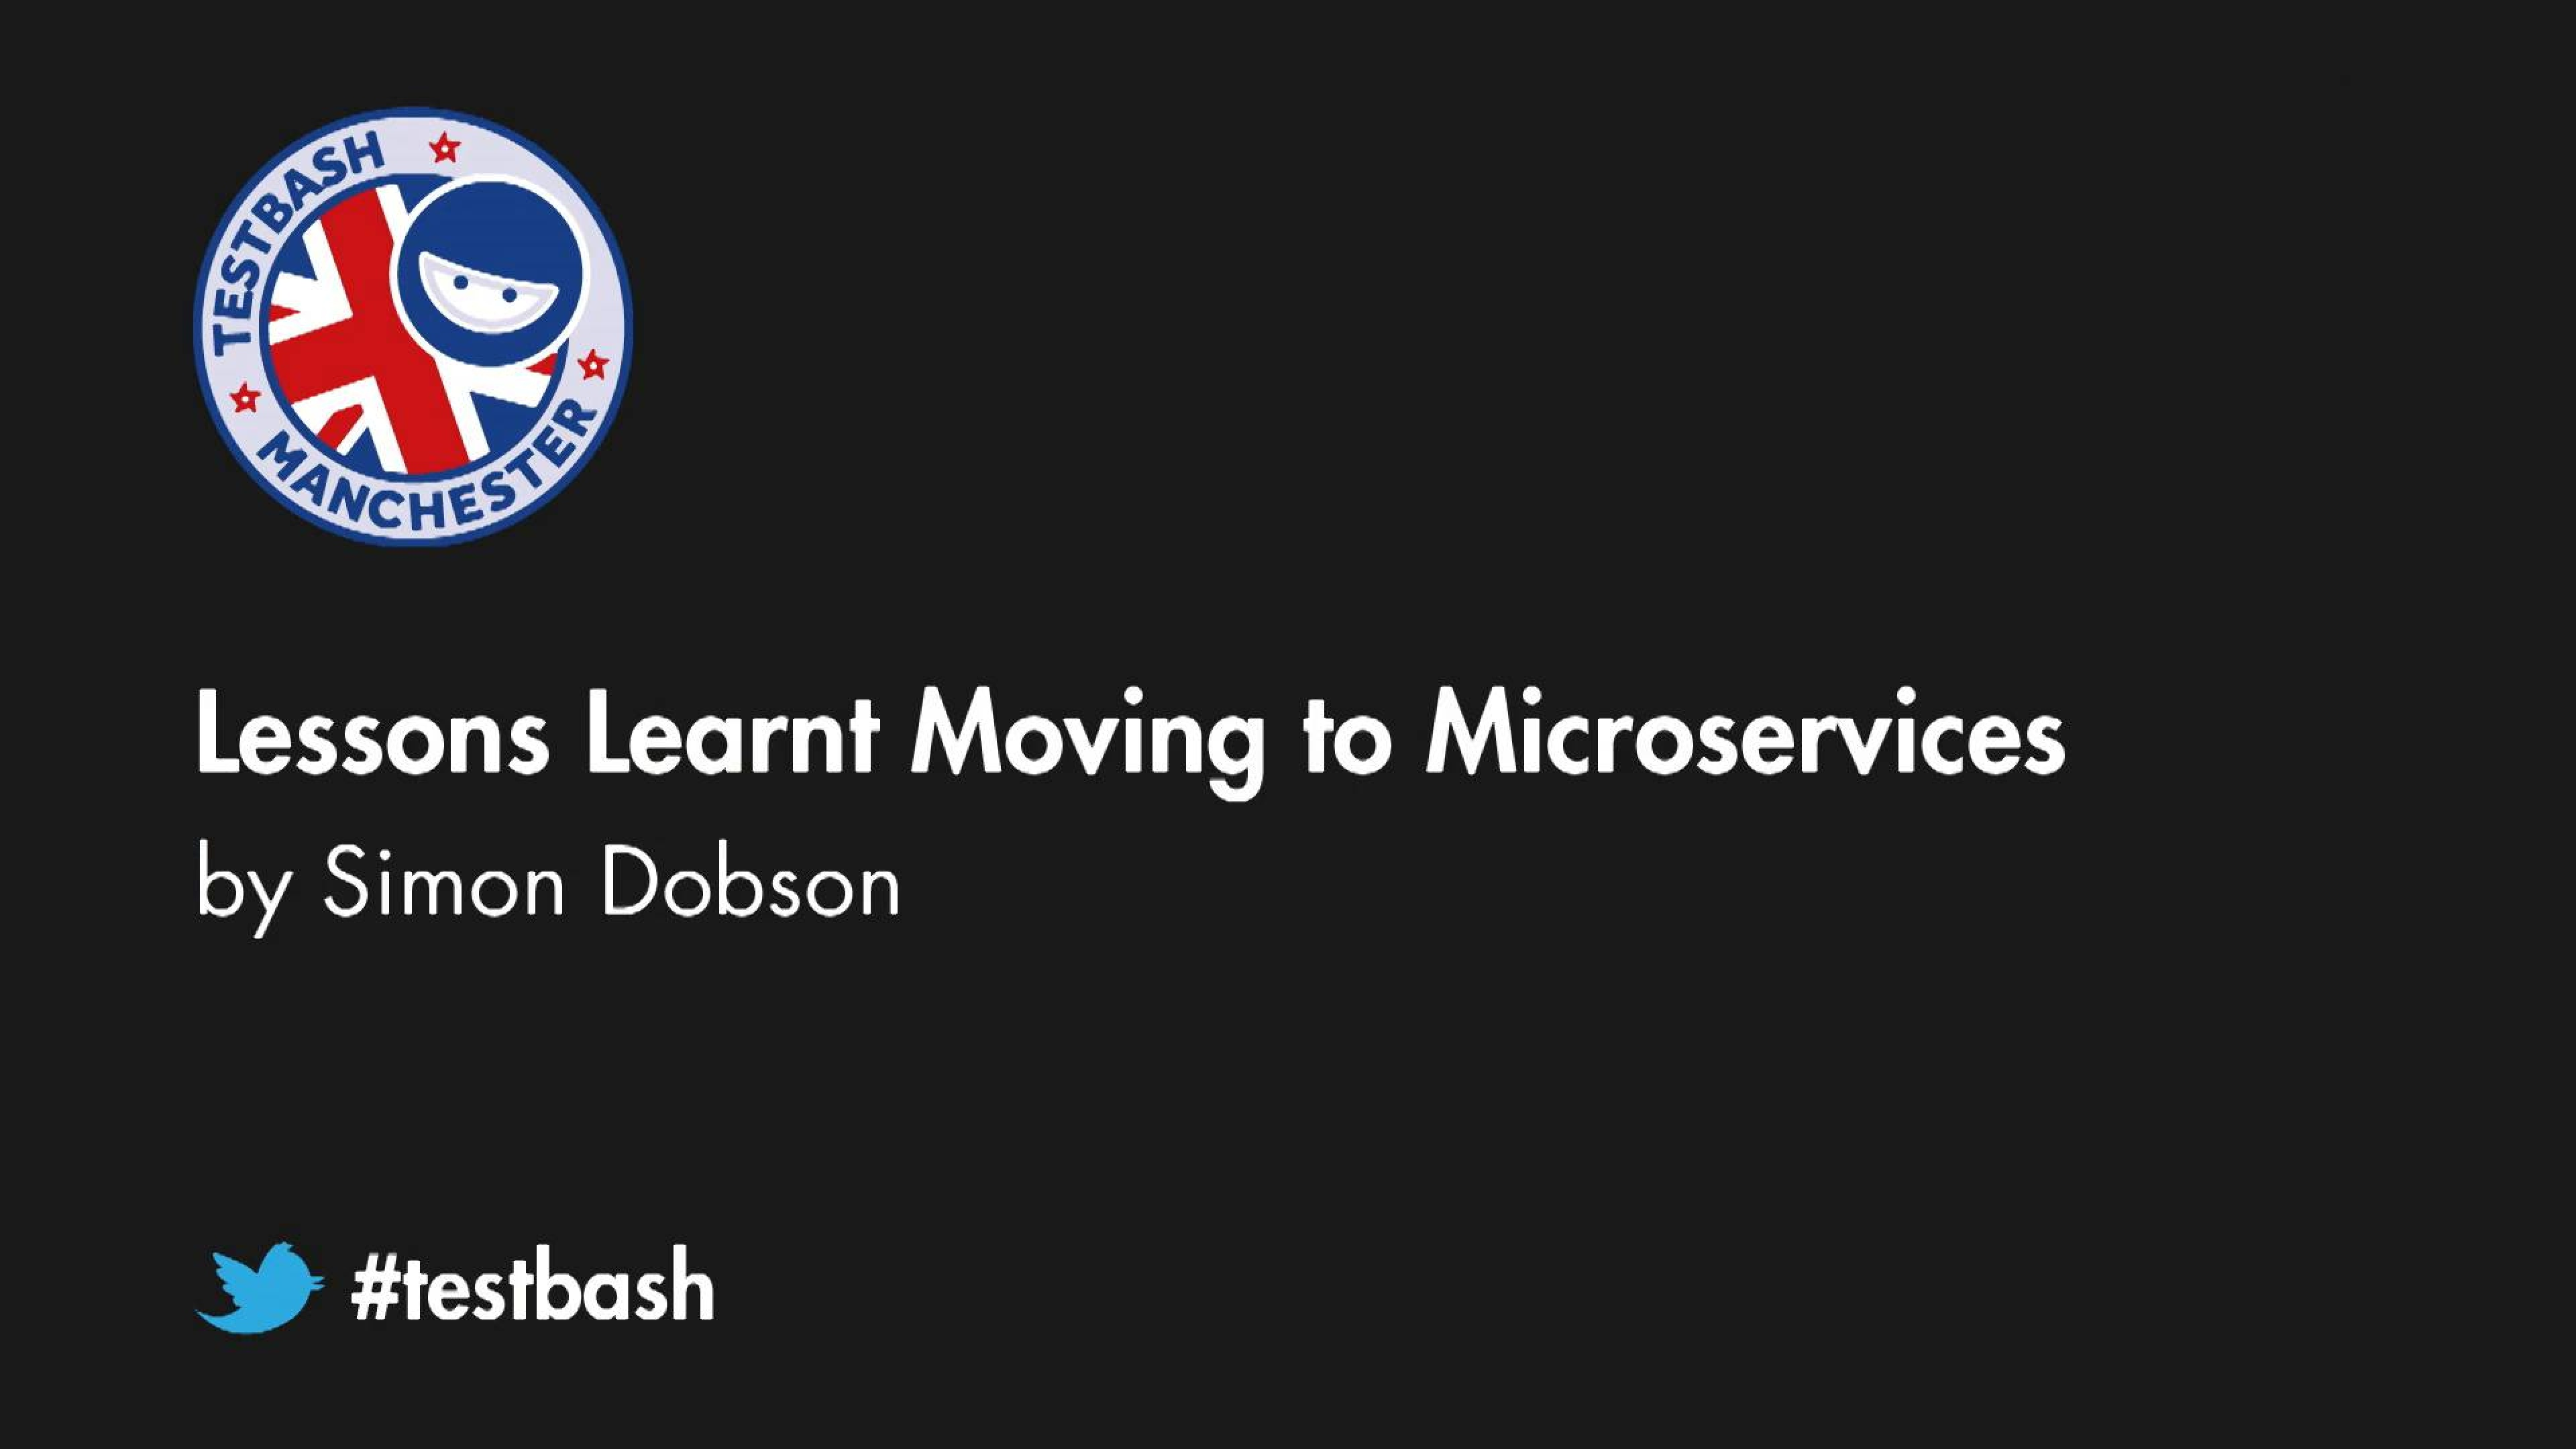 Lessons Learnt Moving to Microservices - Simon Dobson